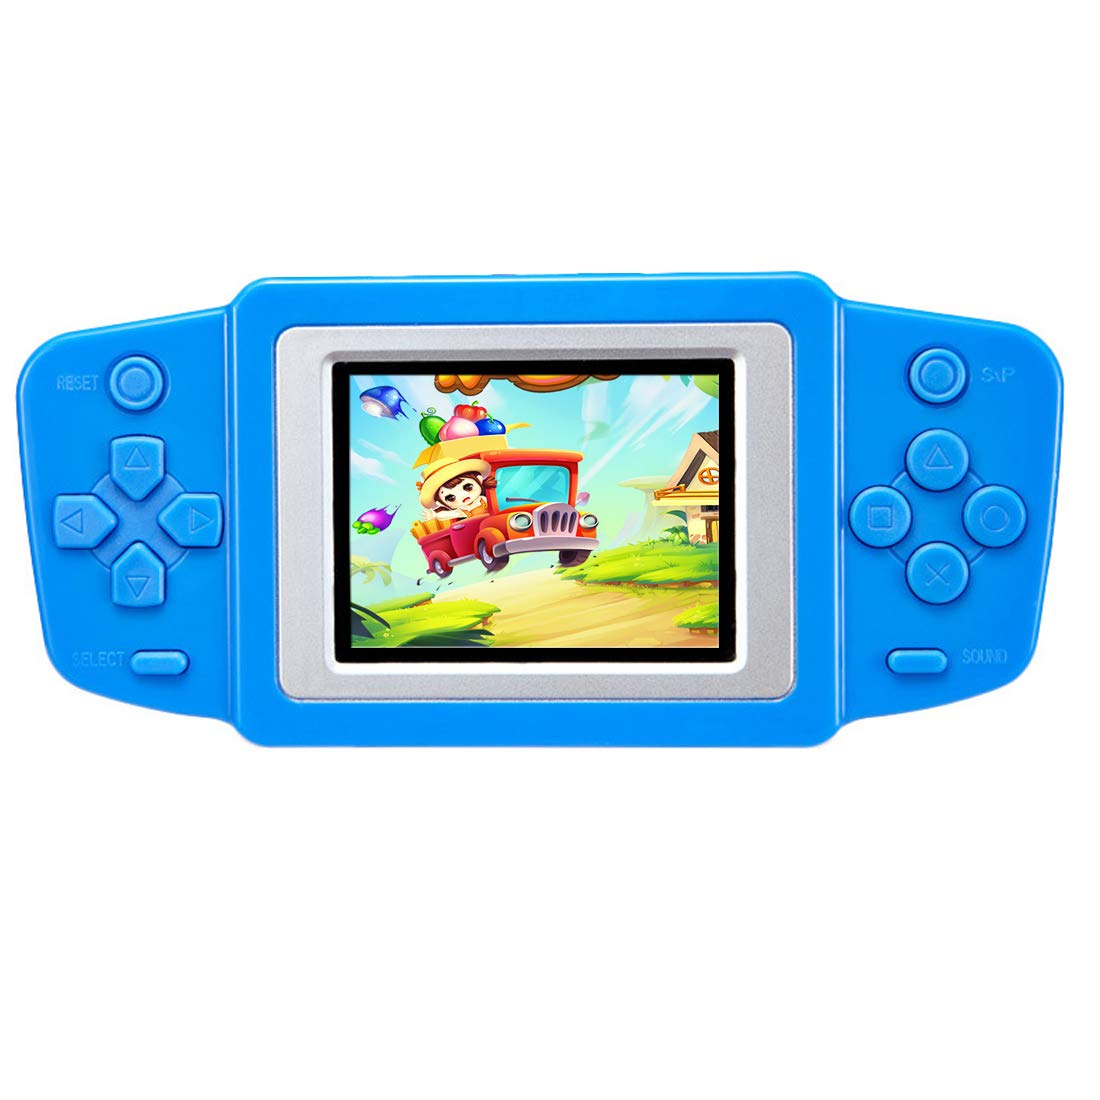 Beico Handheld Games for Kids with Built in 218 Classic Retro Video Games 2.5'' Color Screen Portable Rechargeable Arcade Gaming Player for Boys Girls Birthday (Blue) by Beico